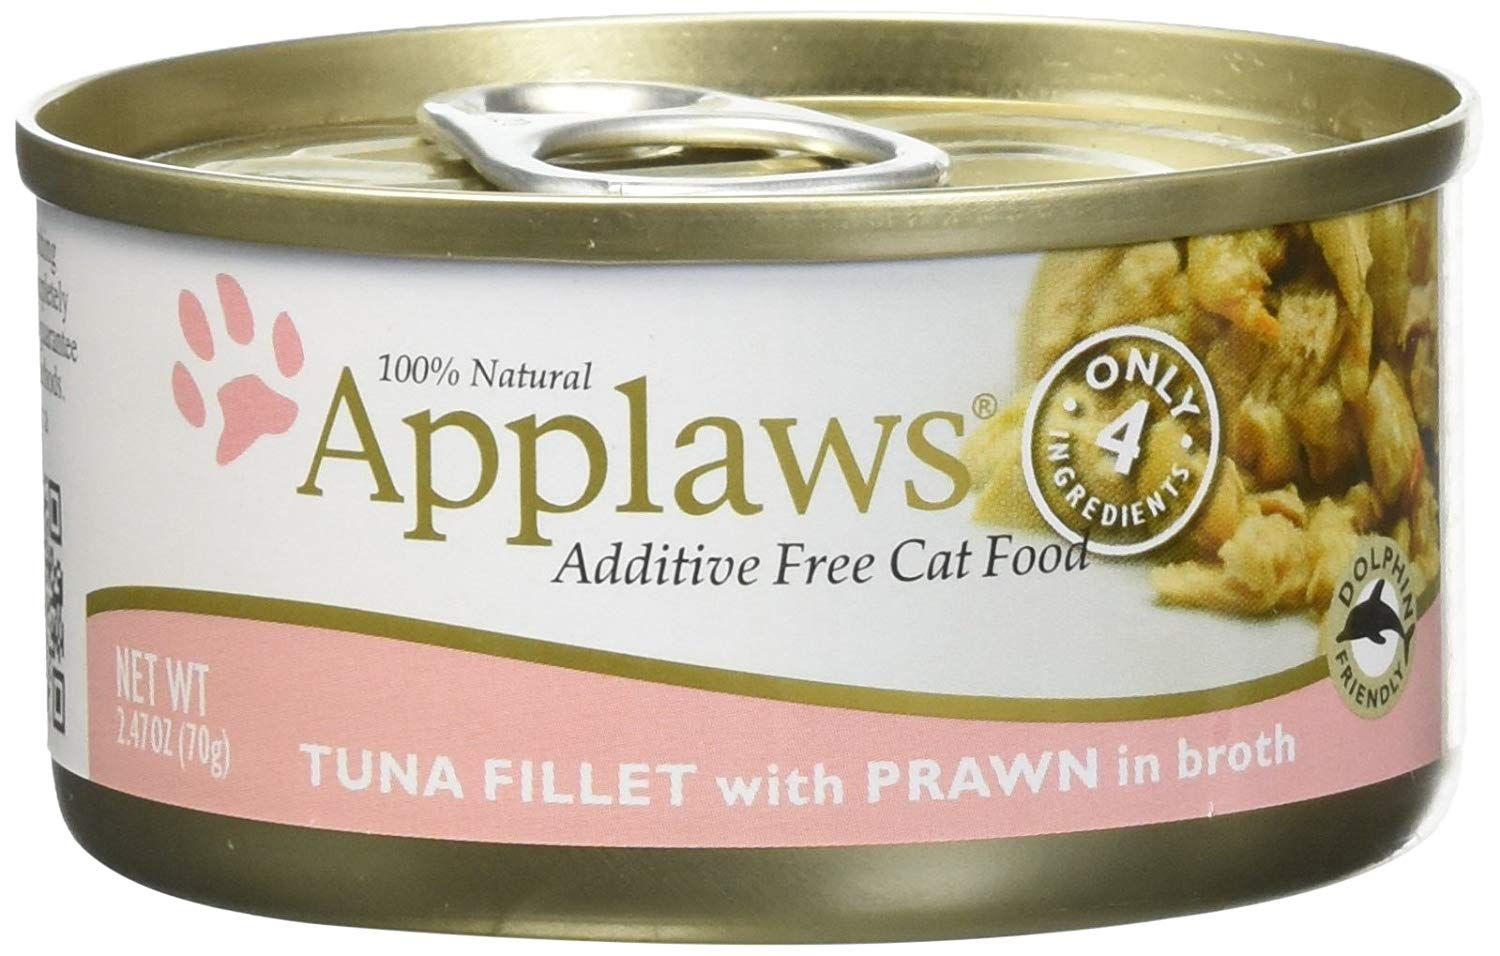 Applaws Tuna Fillet With Prawn Canned Cat Food 2 47 Oz 24 In A Case Nice To Have You For Viewing Our Picture Canned Cat Food Free Cat Food Tuna Fillet